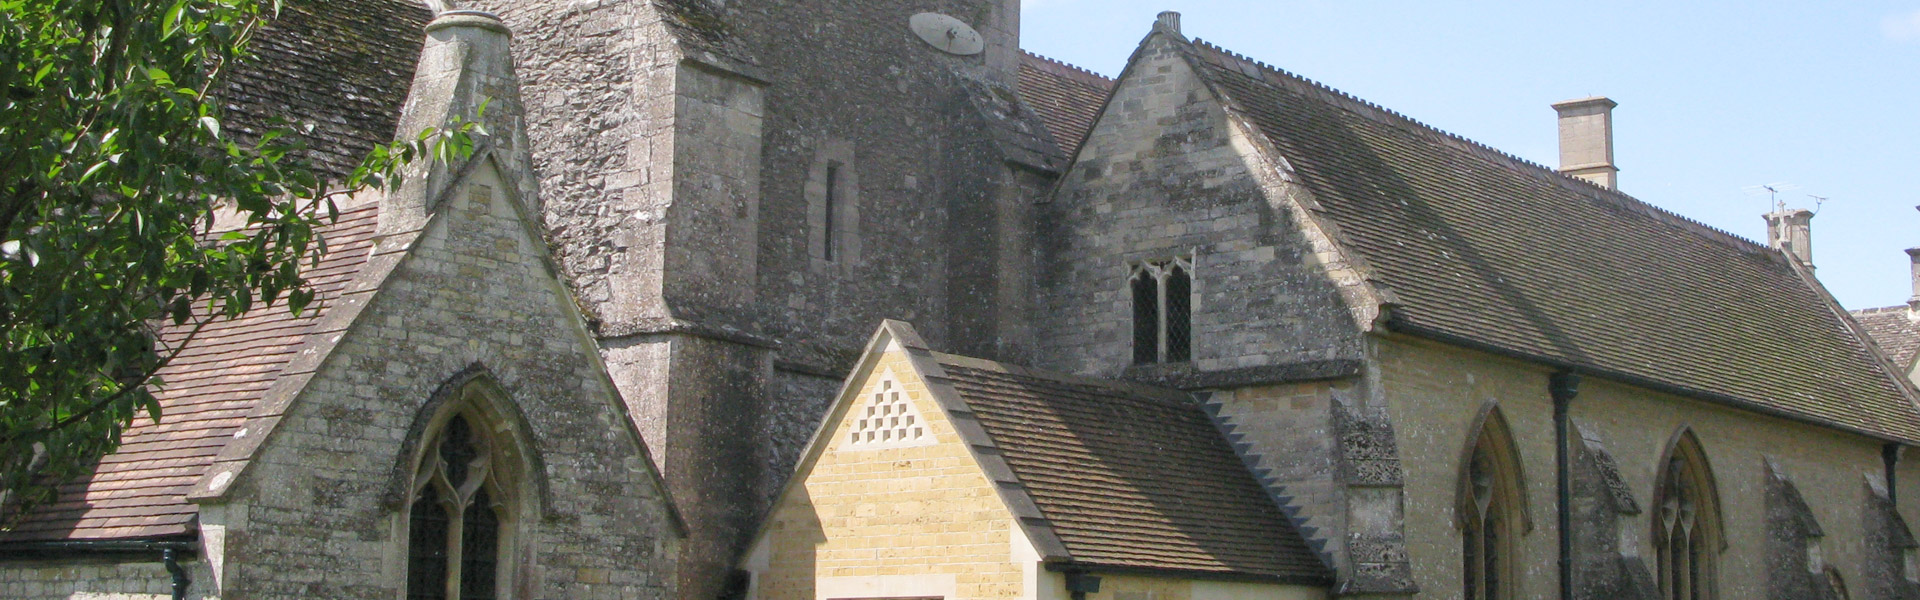 All Hallows Church in South Cerney